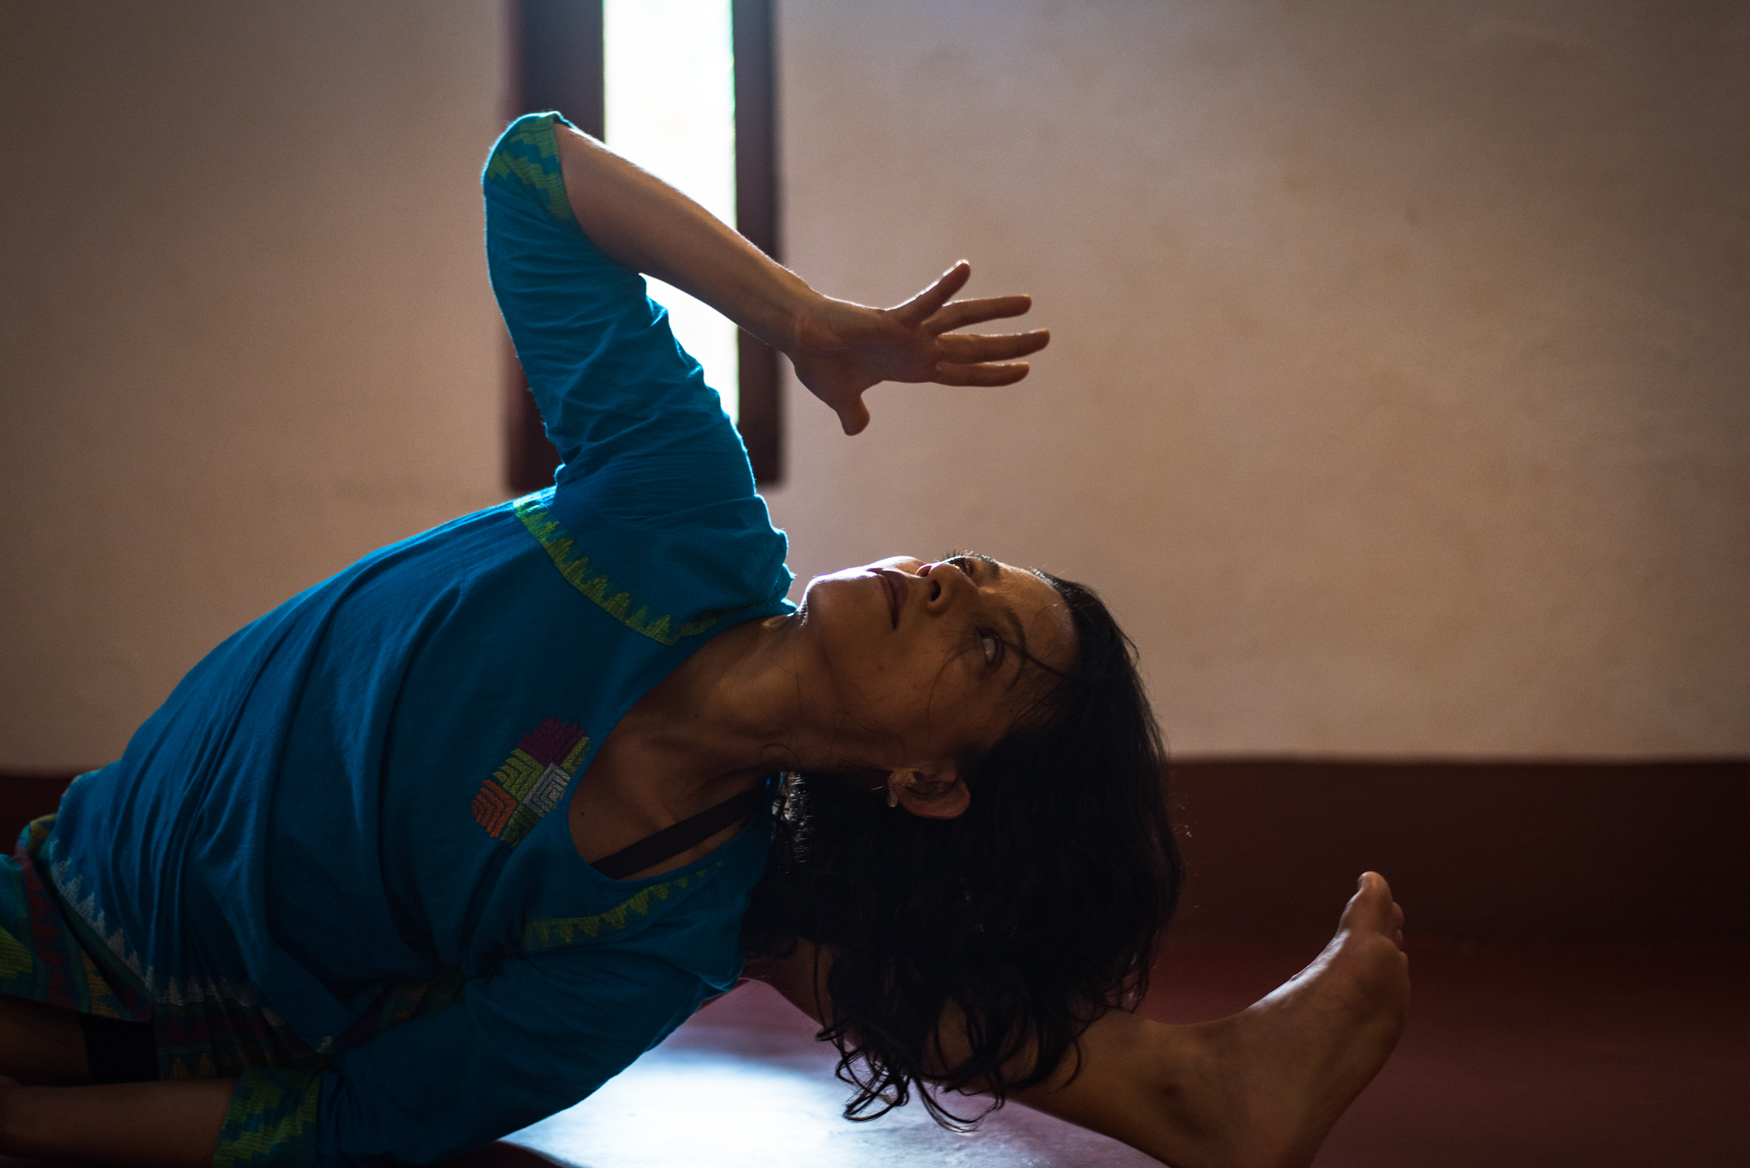 Yoga-Inspired-Practices-Photography-Costa-Rica-17.jpg